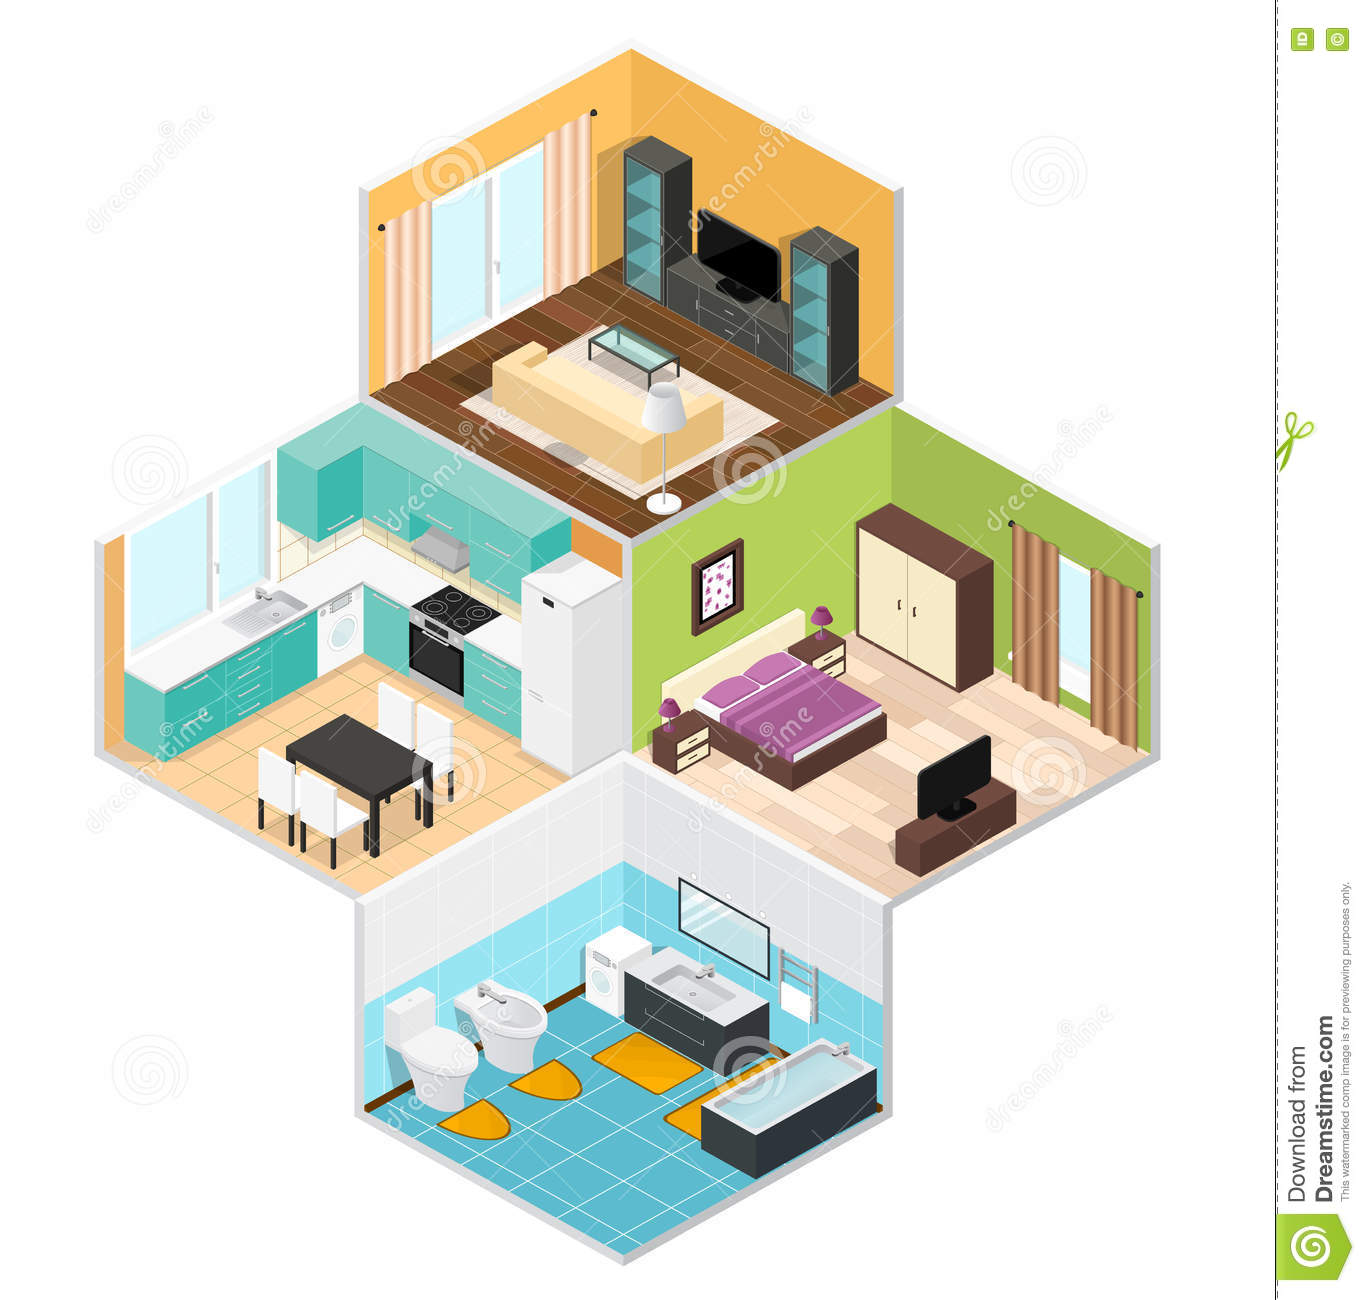 Interior Of The Rooms Inside The House Cartoon Vector